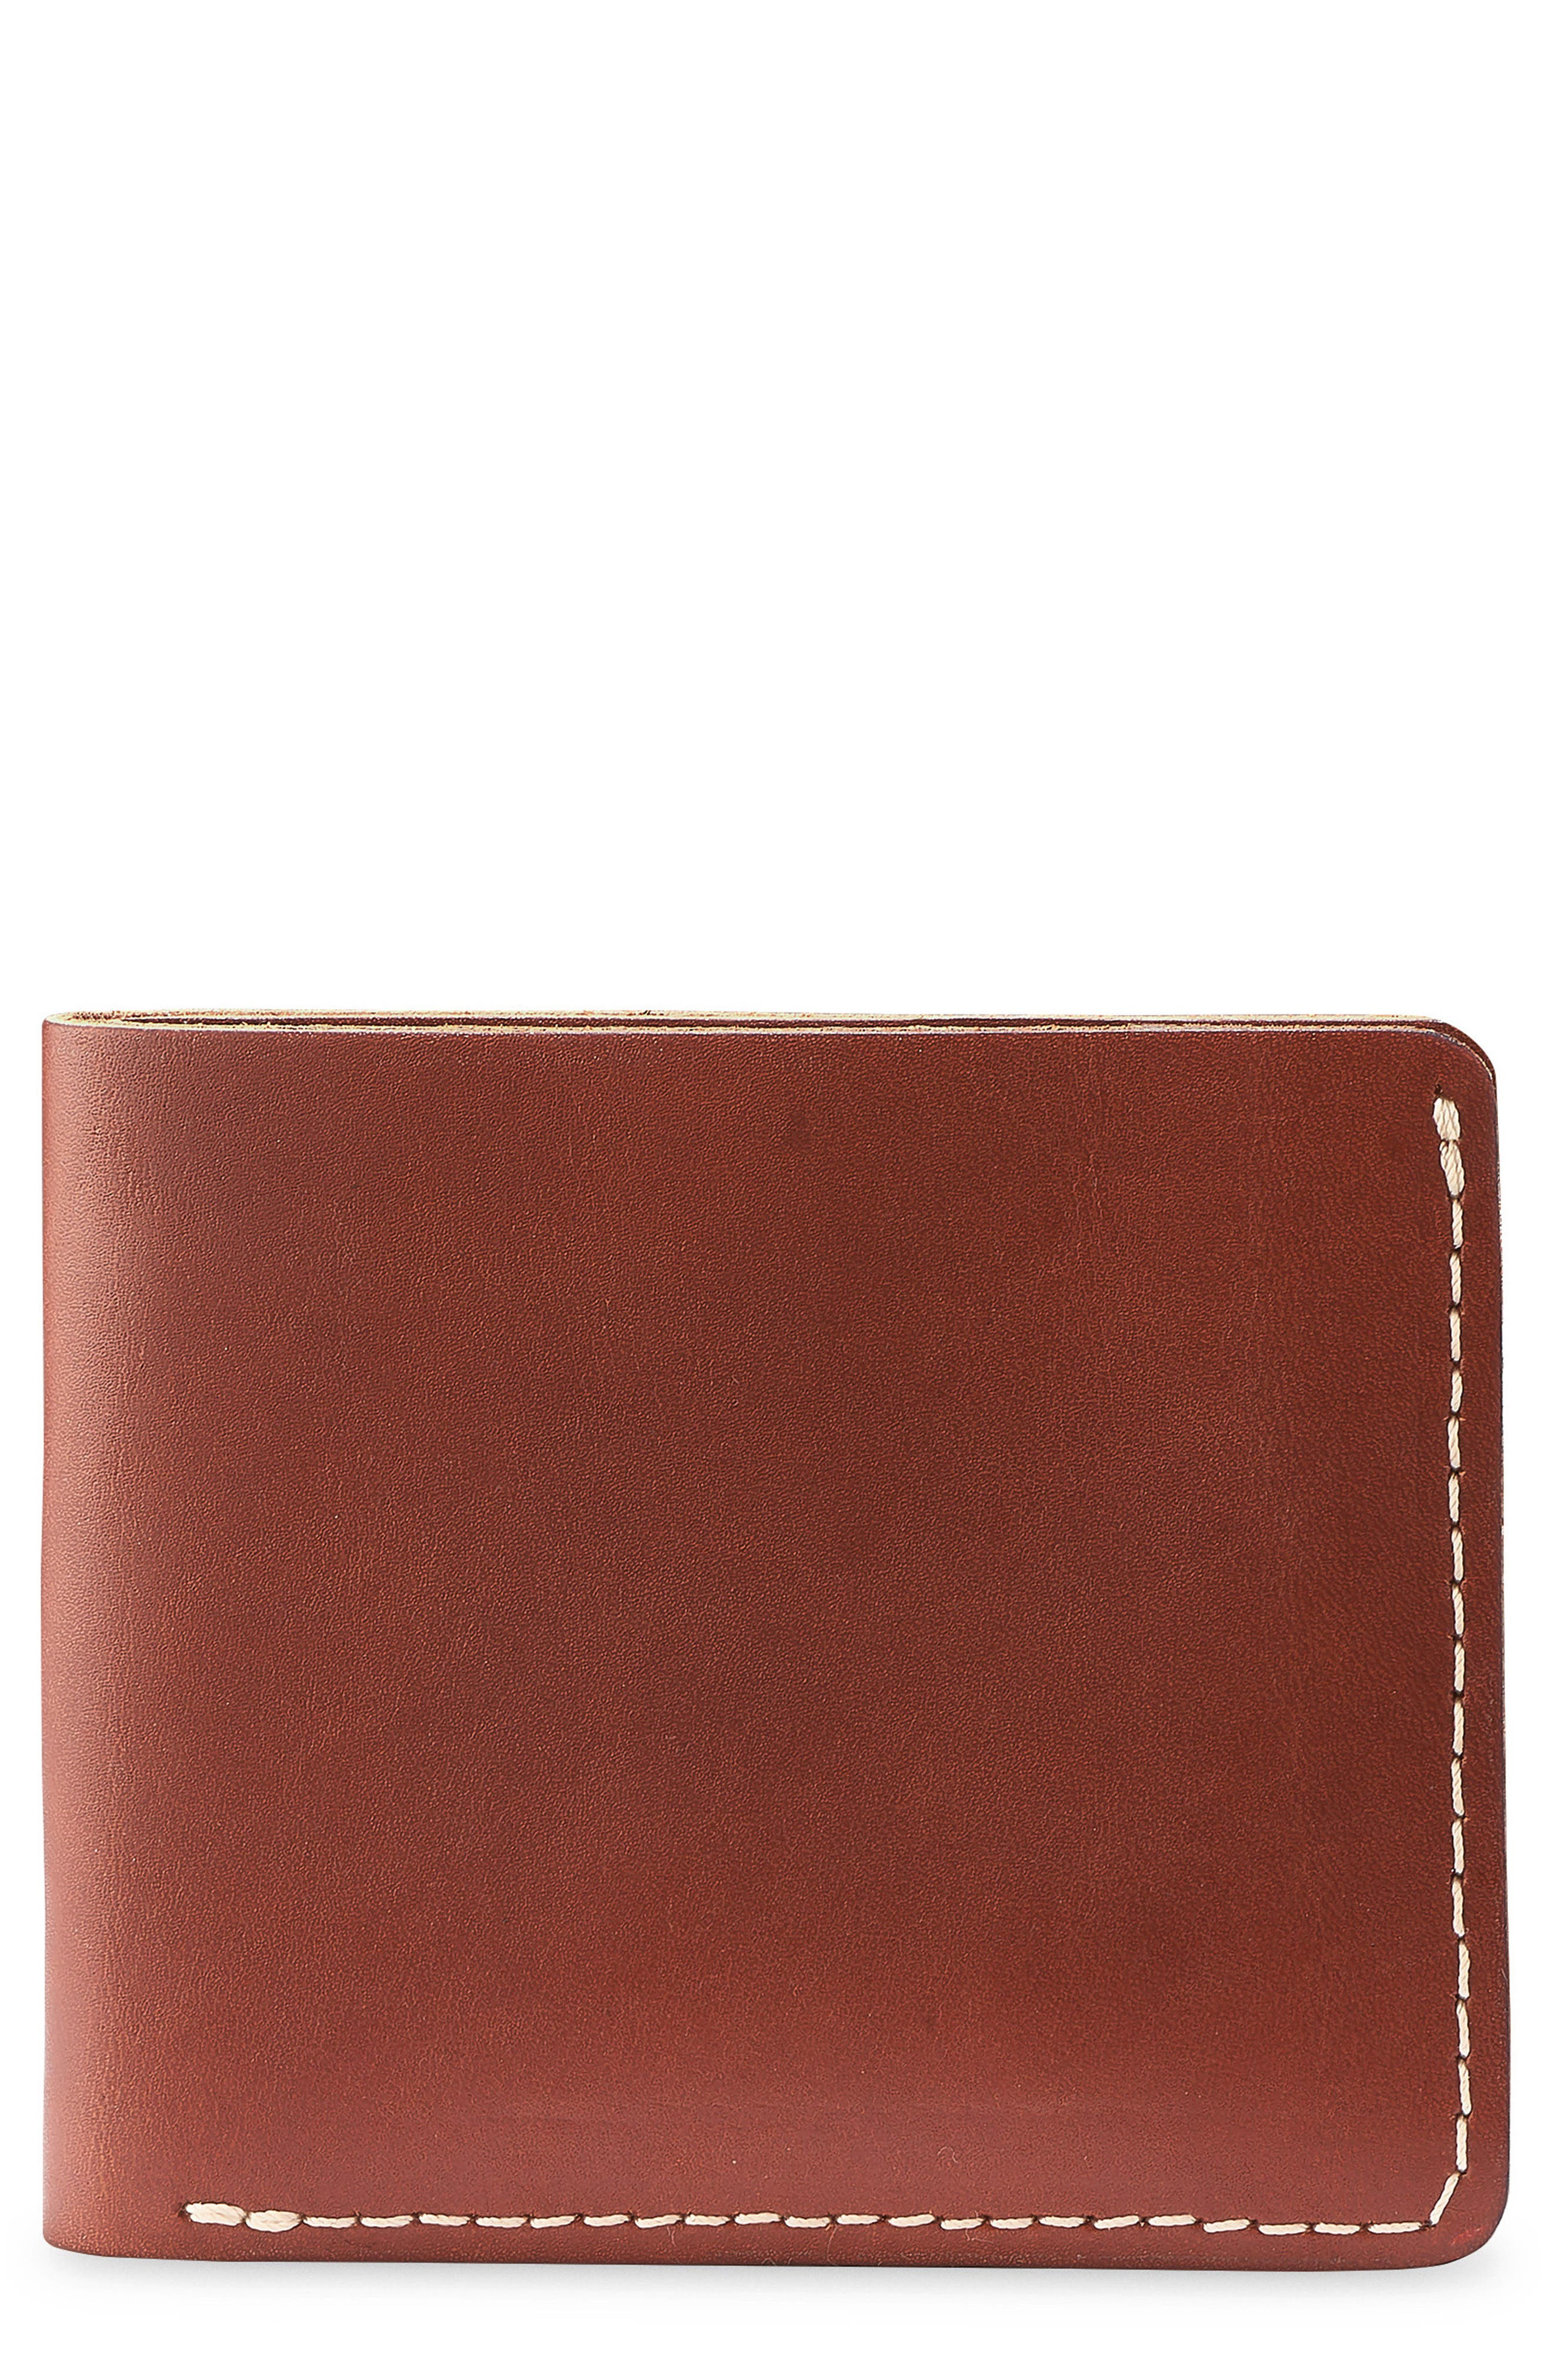 Classic Bifold Leather Wallet,                         Main,                         color, Oro Russet